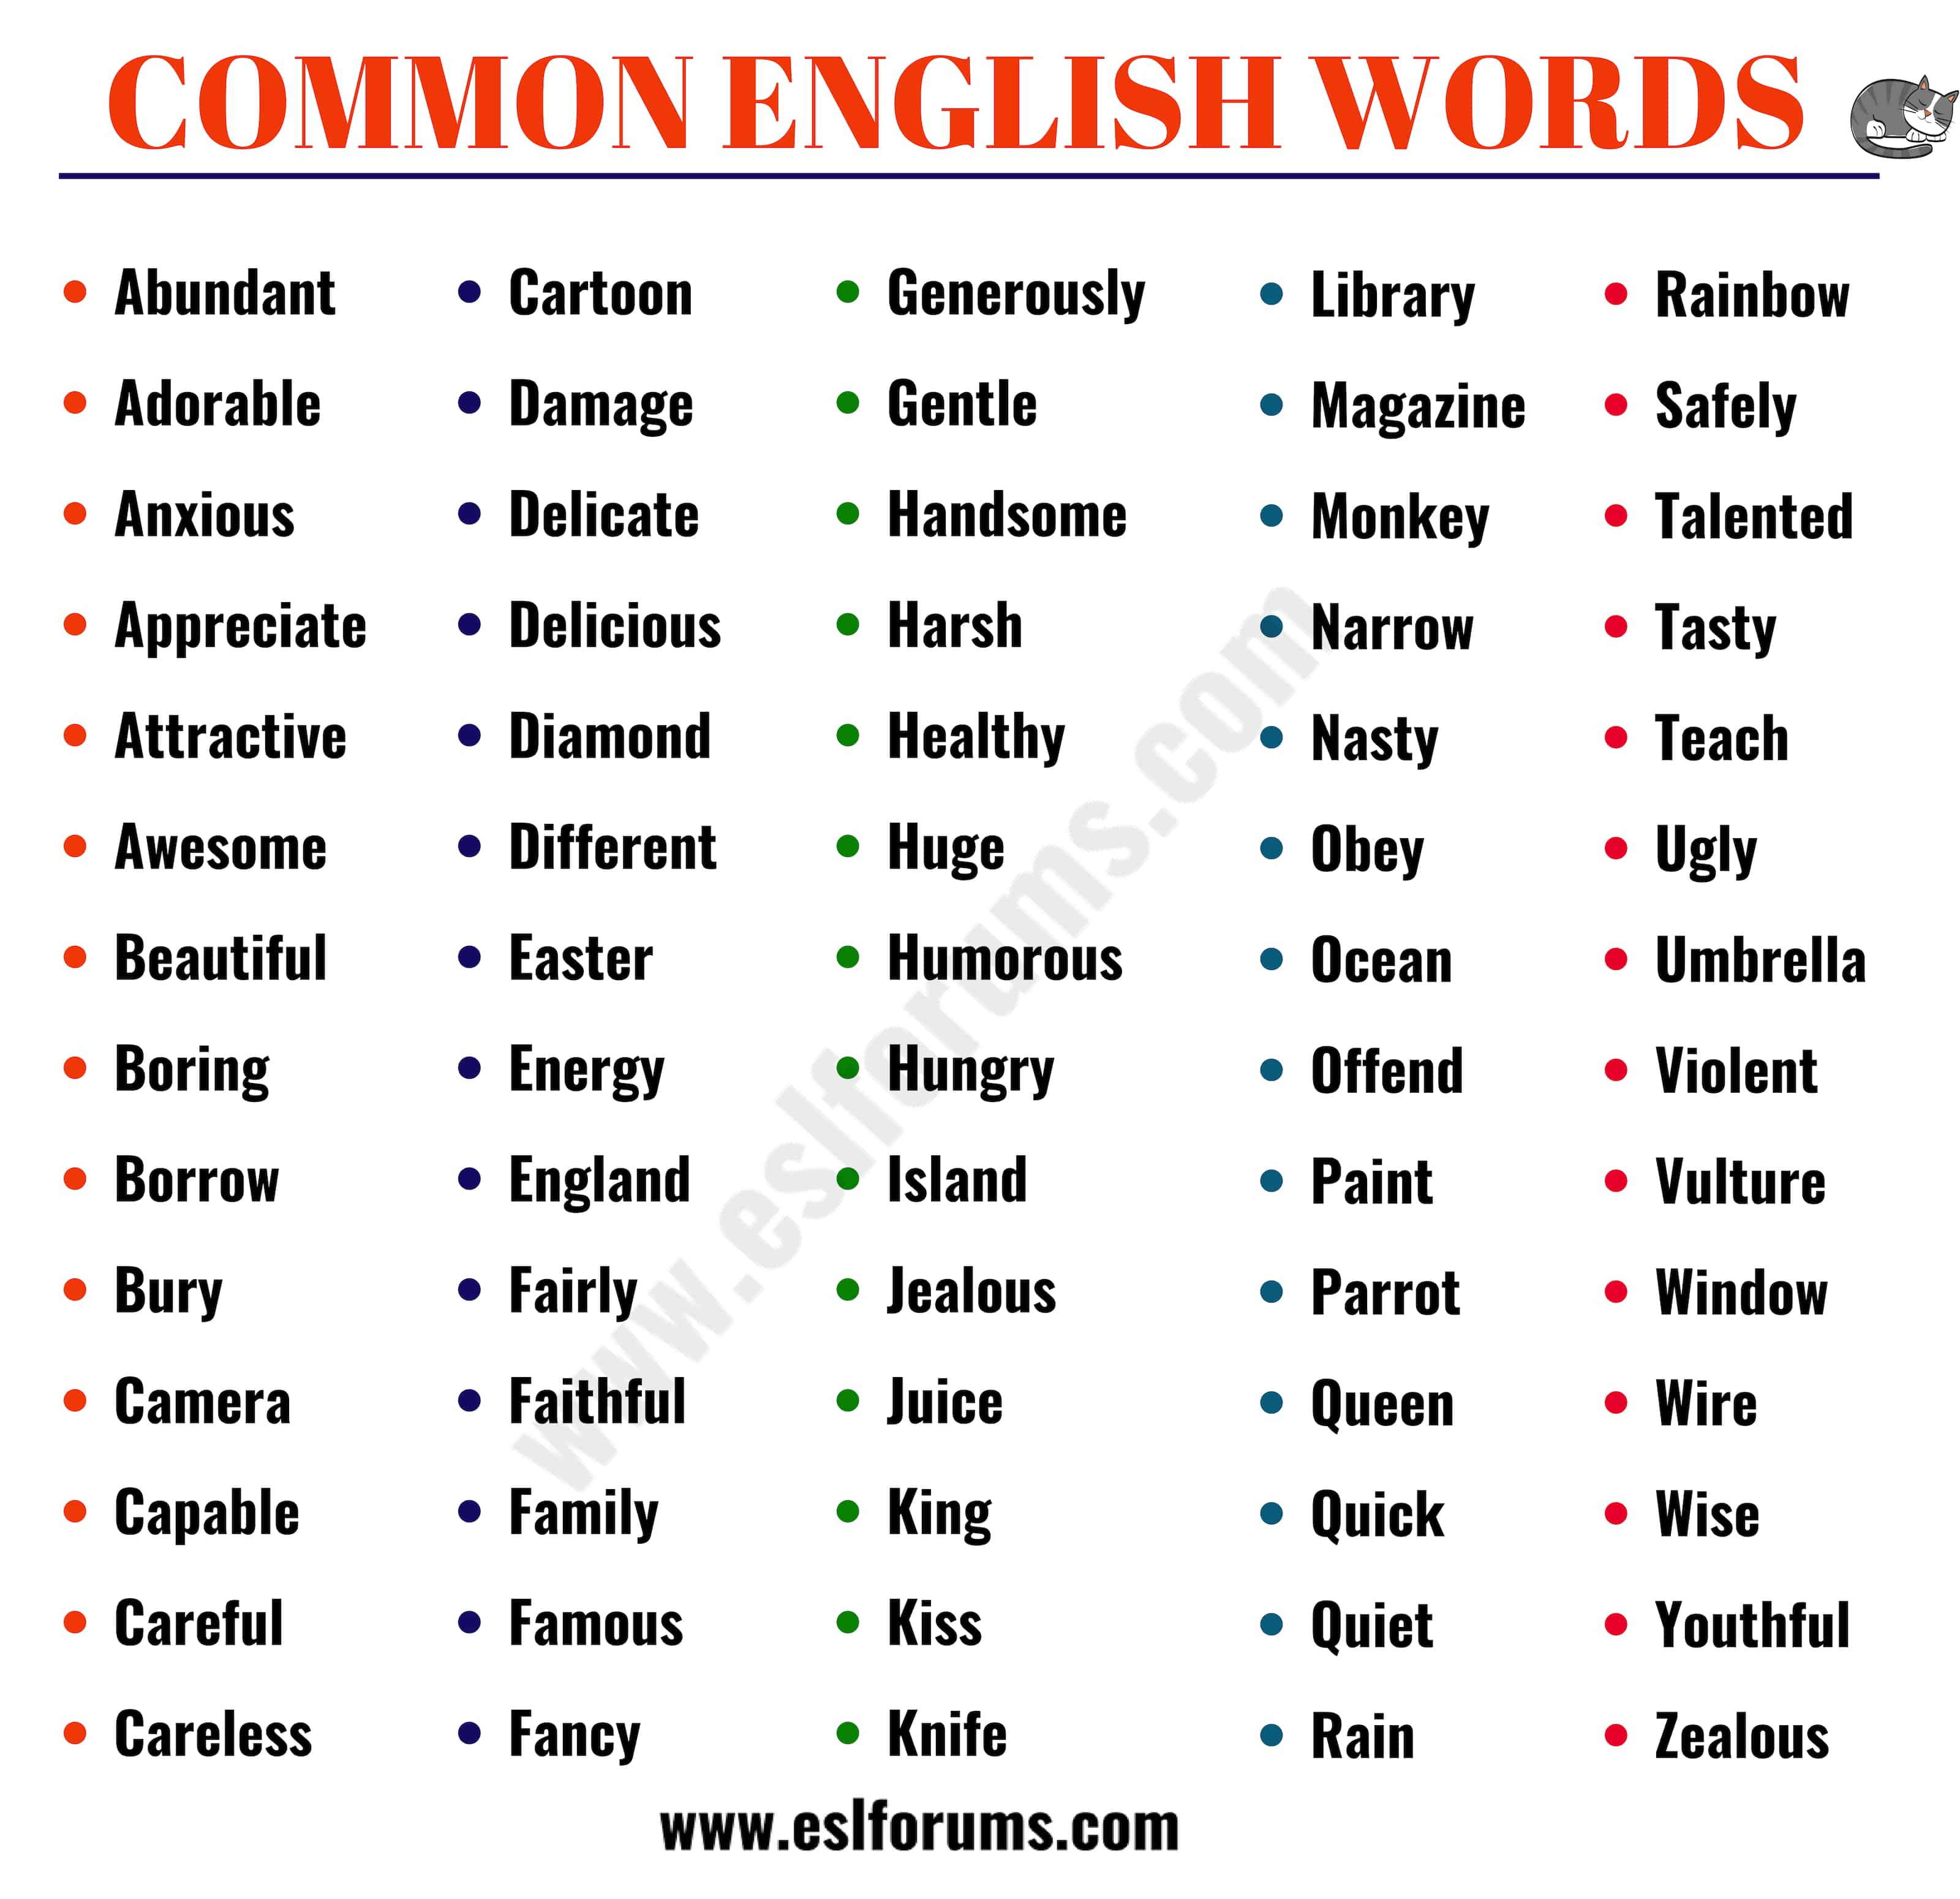 List of 700+ Most Common English Words Everyone Should Learn!